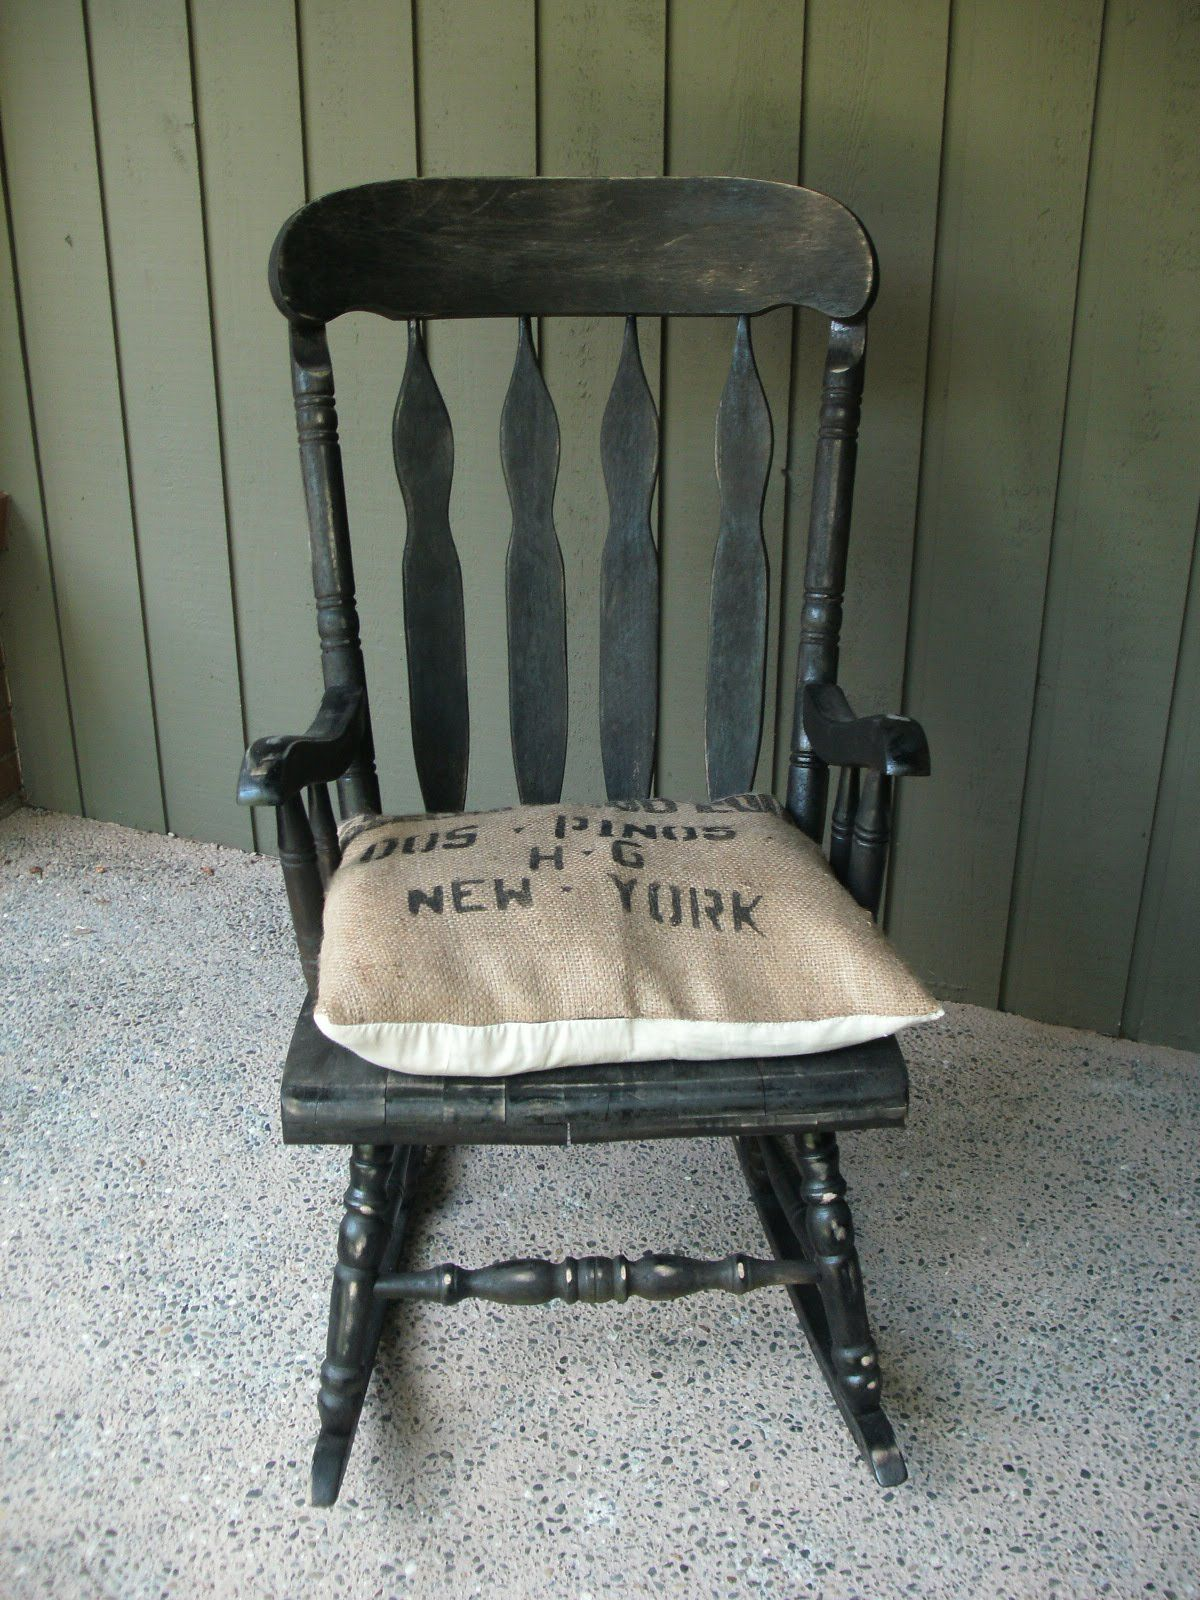 Swell Vintage Rocker With A Distressed Black Finish Vintage Bralicious Painted Fabric Chair Ideas Braliciousco